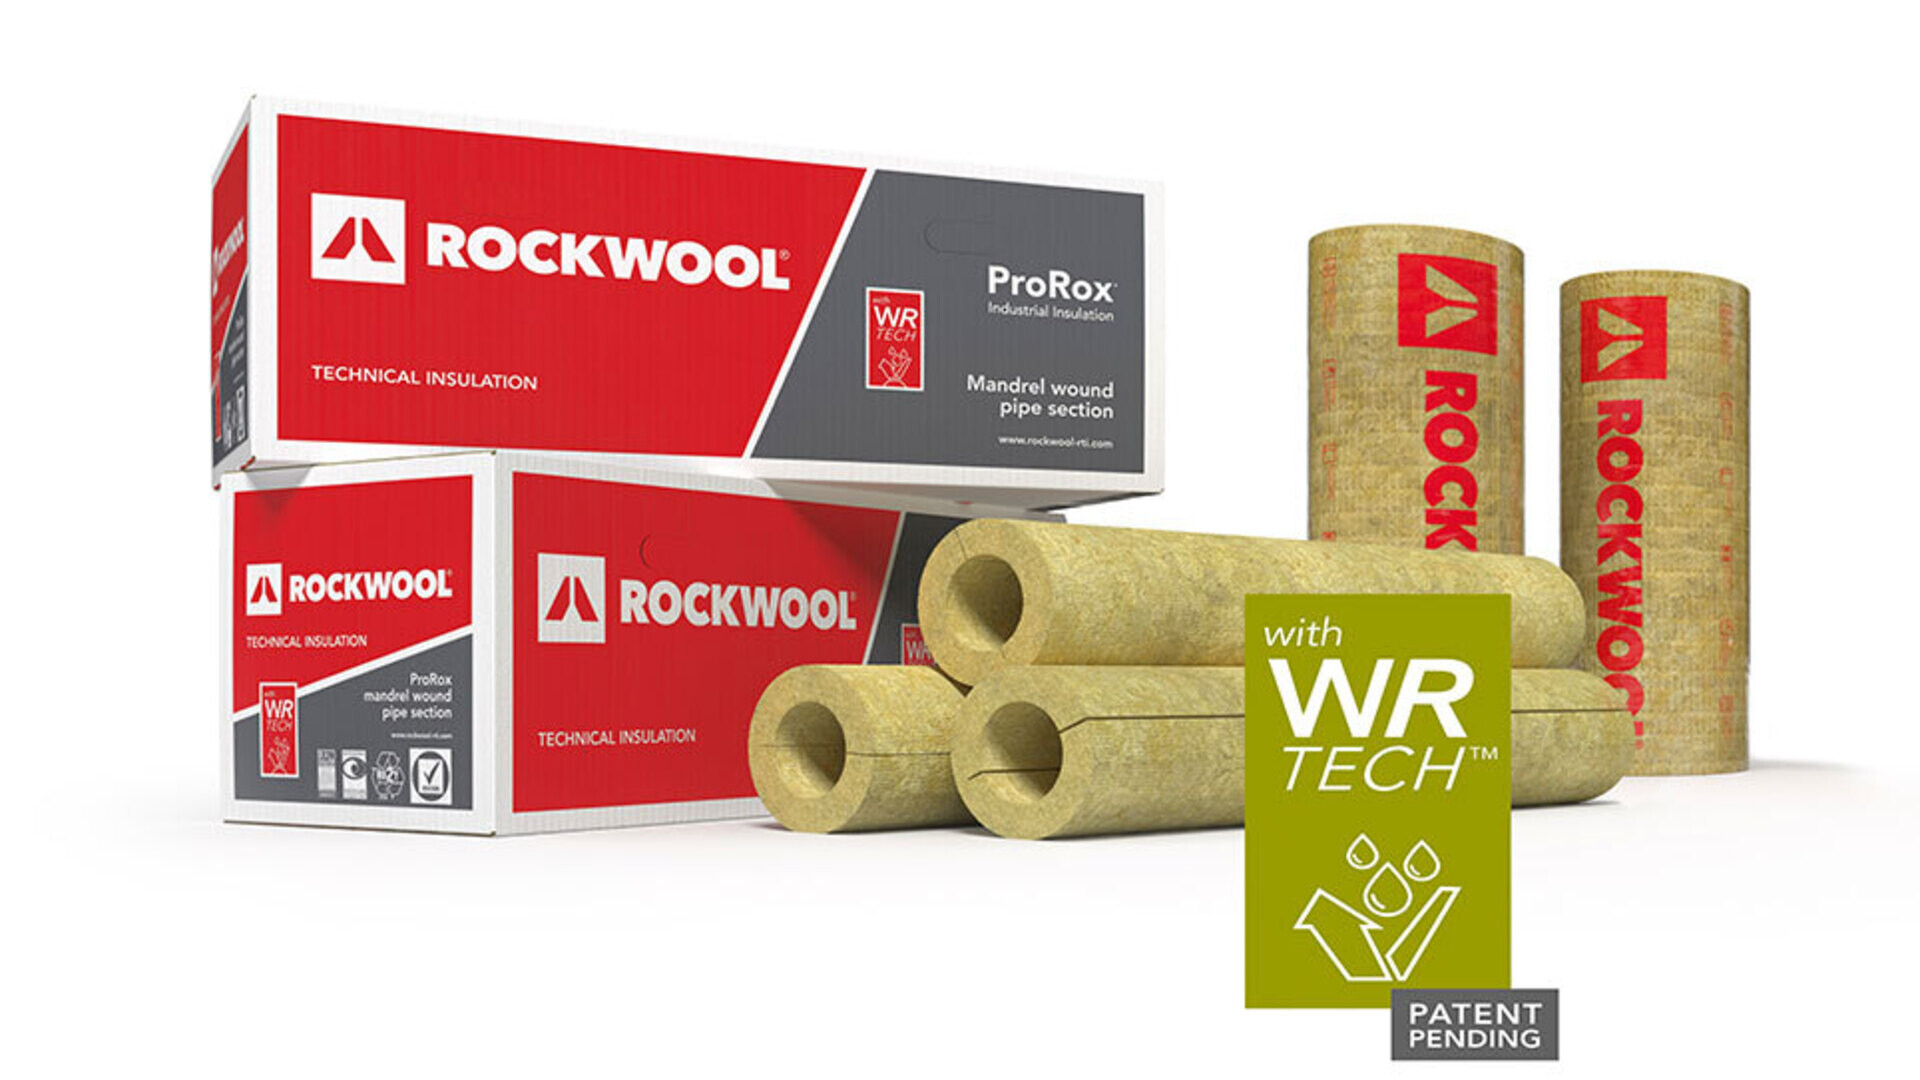 ProRox, industry, industrial, product, PS, pipe section, PS 960, mono product line name, WR-Tech, packaging, carton box, WR-Tech label, 3D image, product catalogue